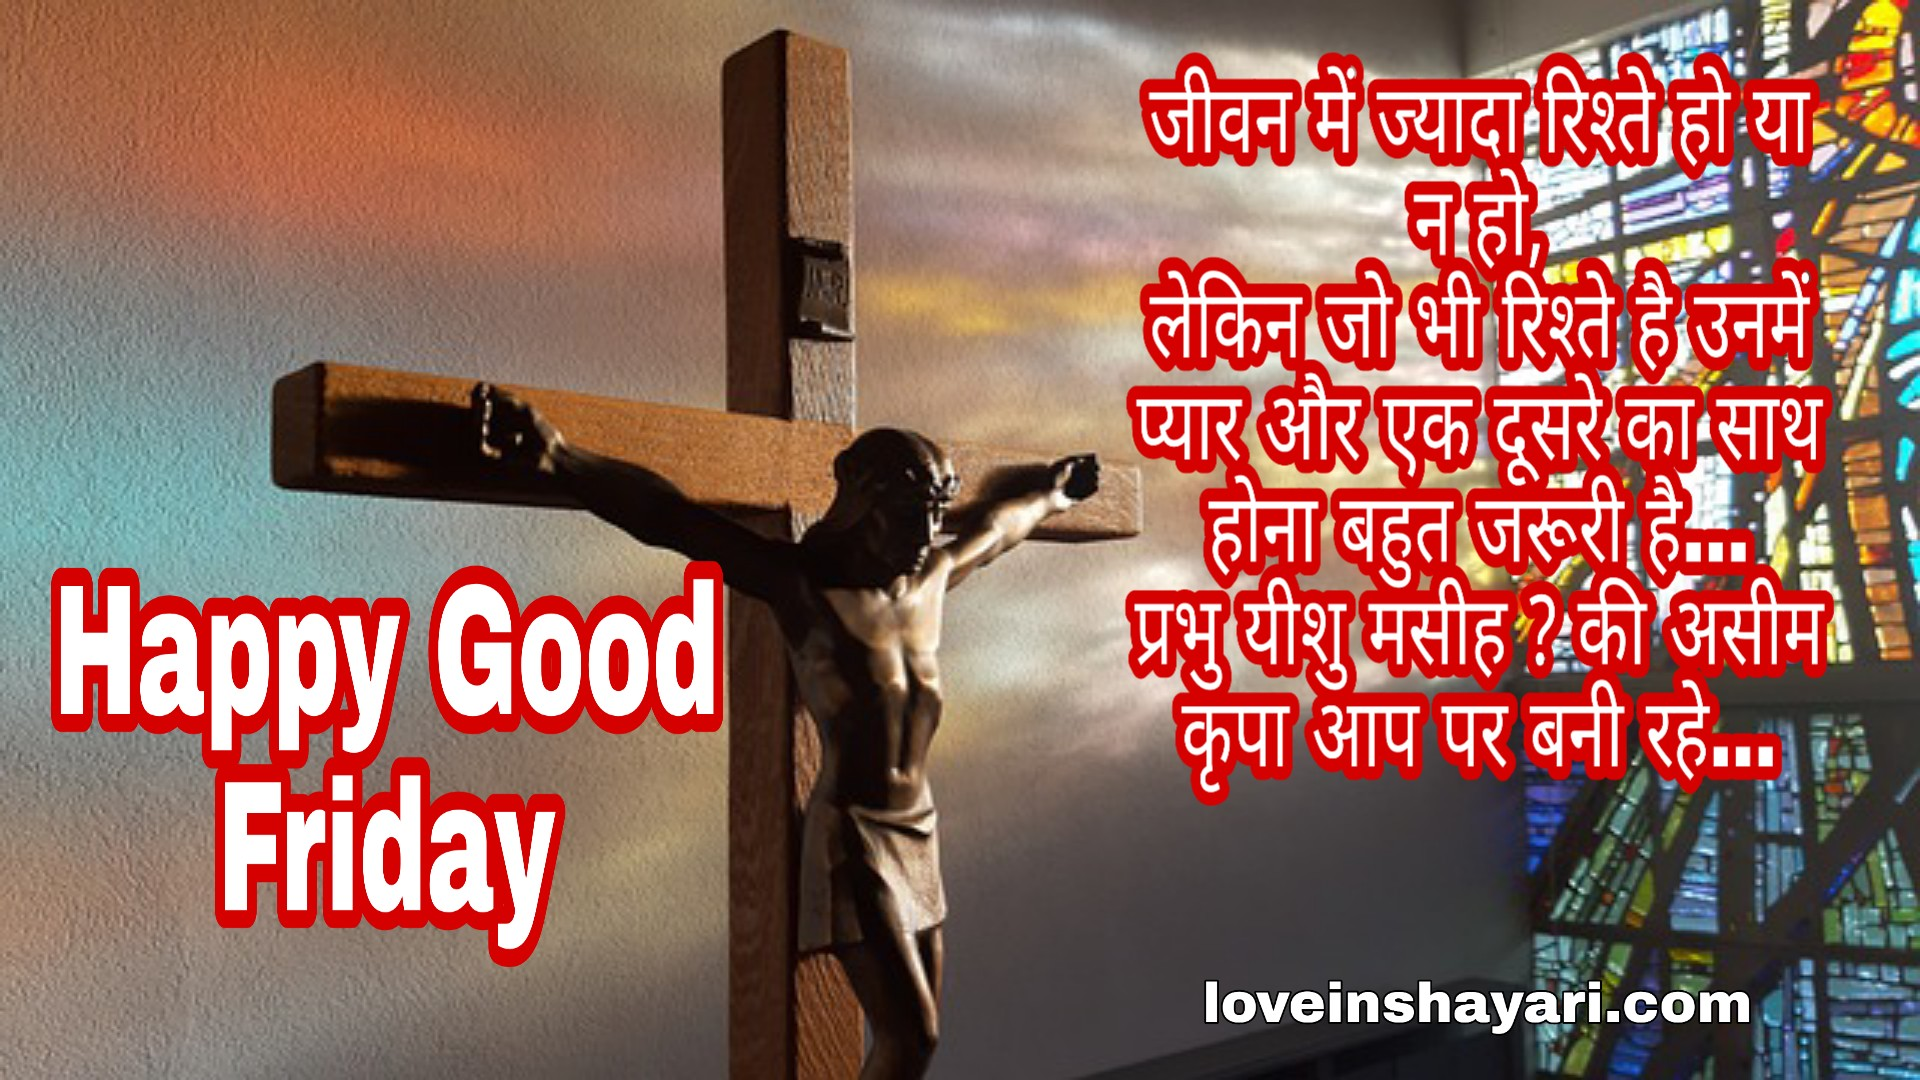 Good Friday wishes shayari quotes messages